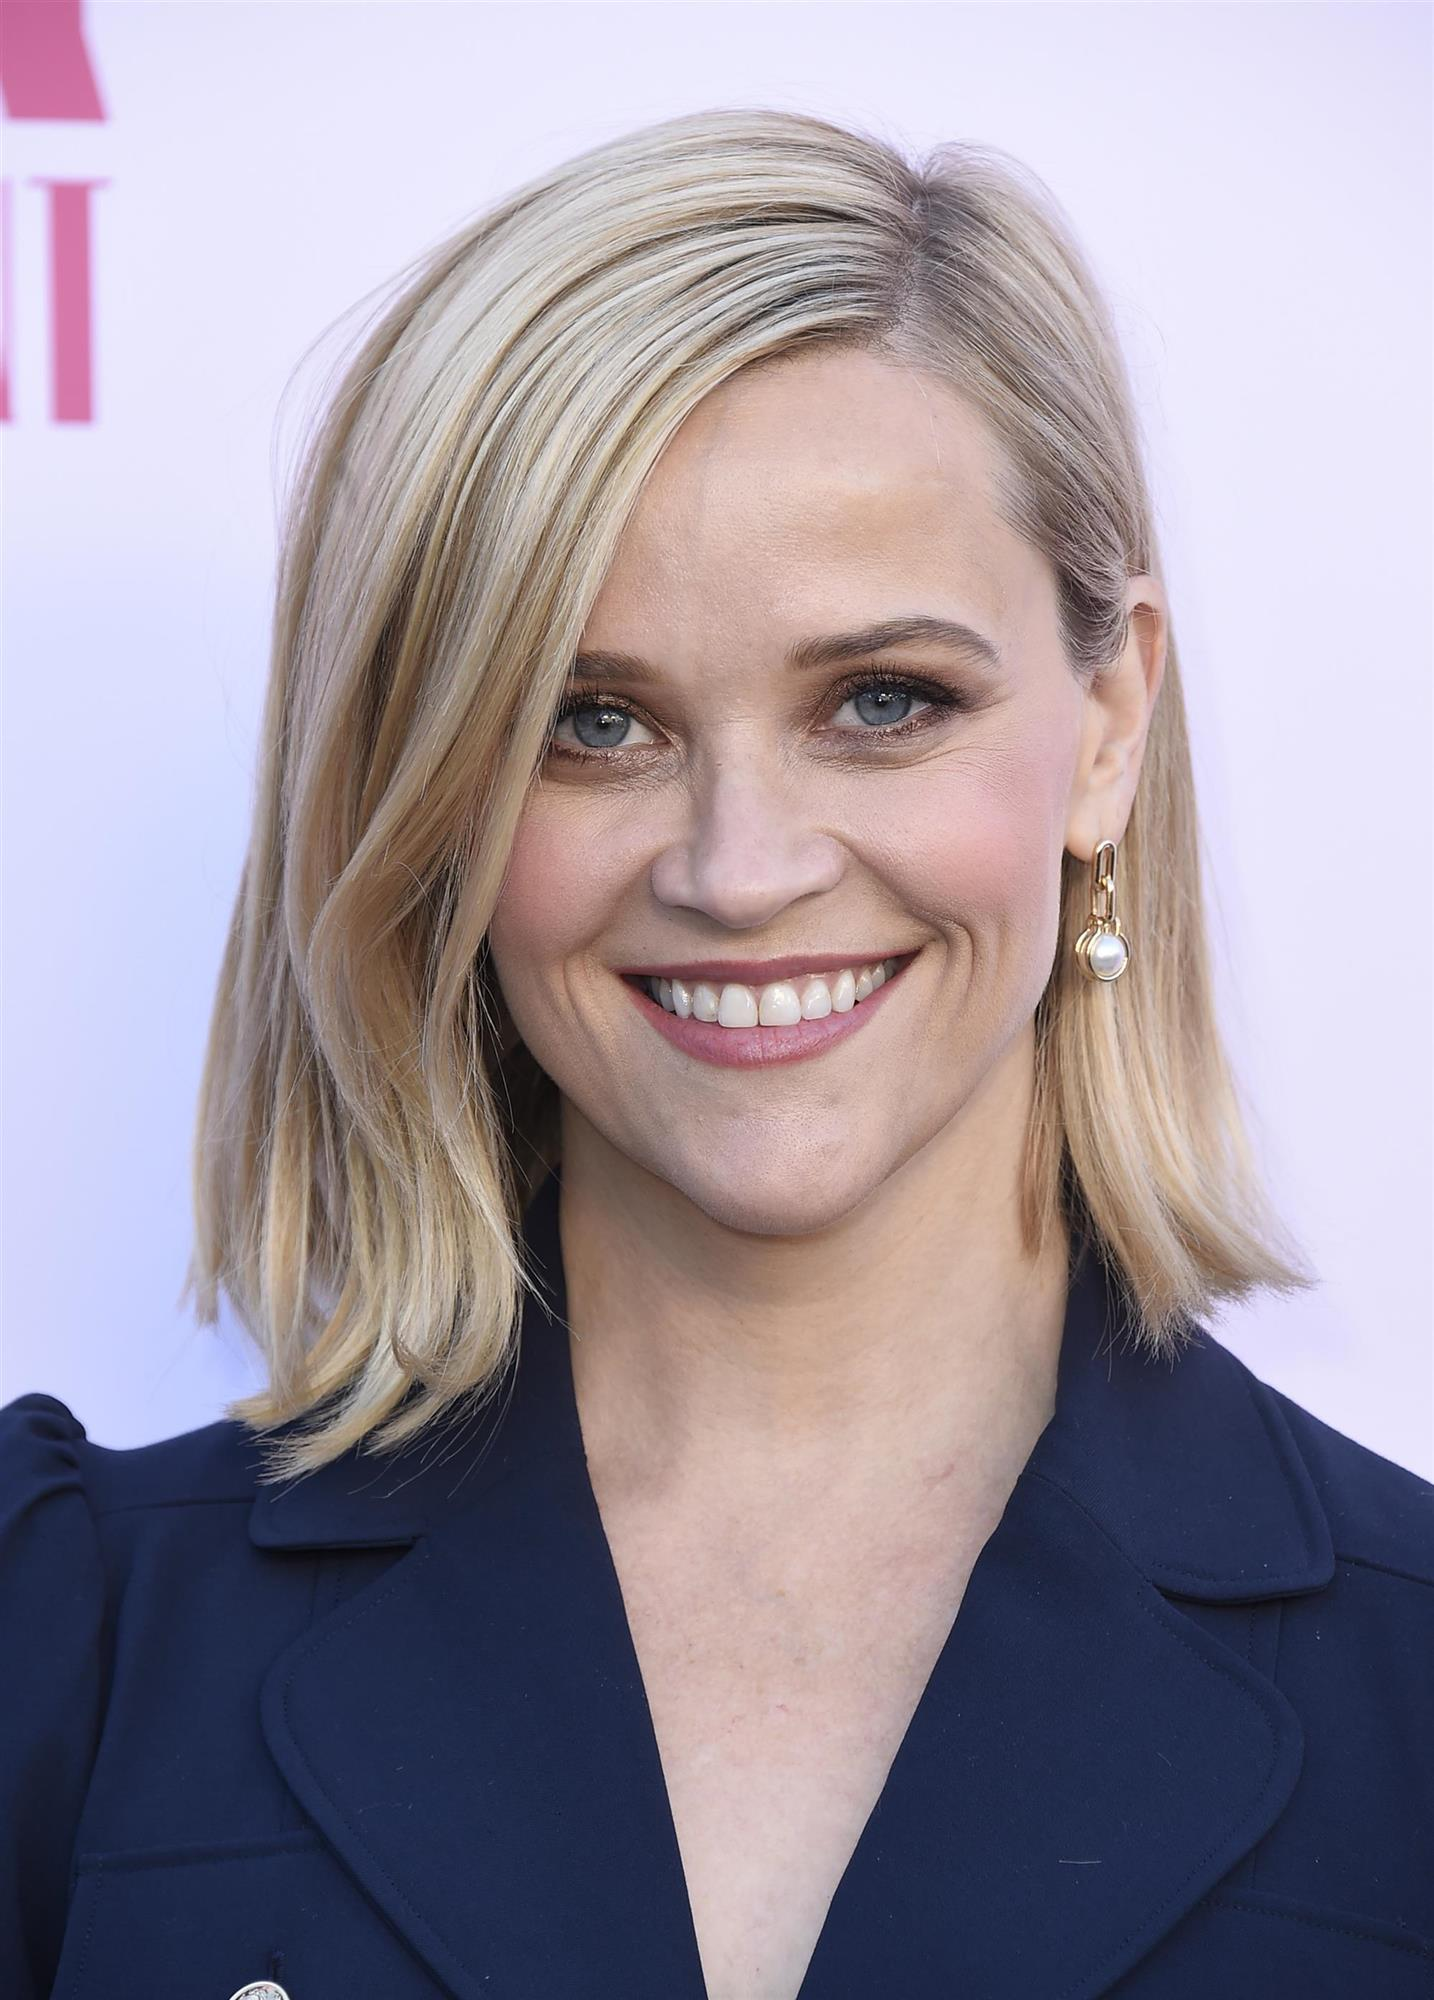 Reese Witherspoon con media melena